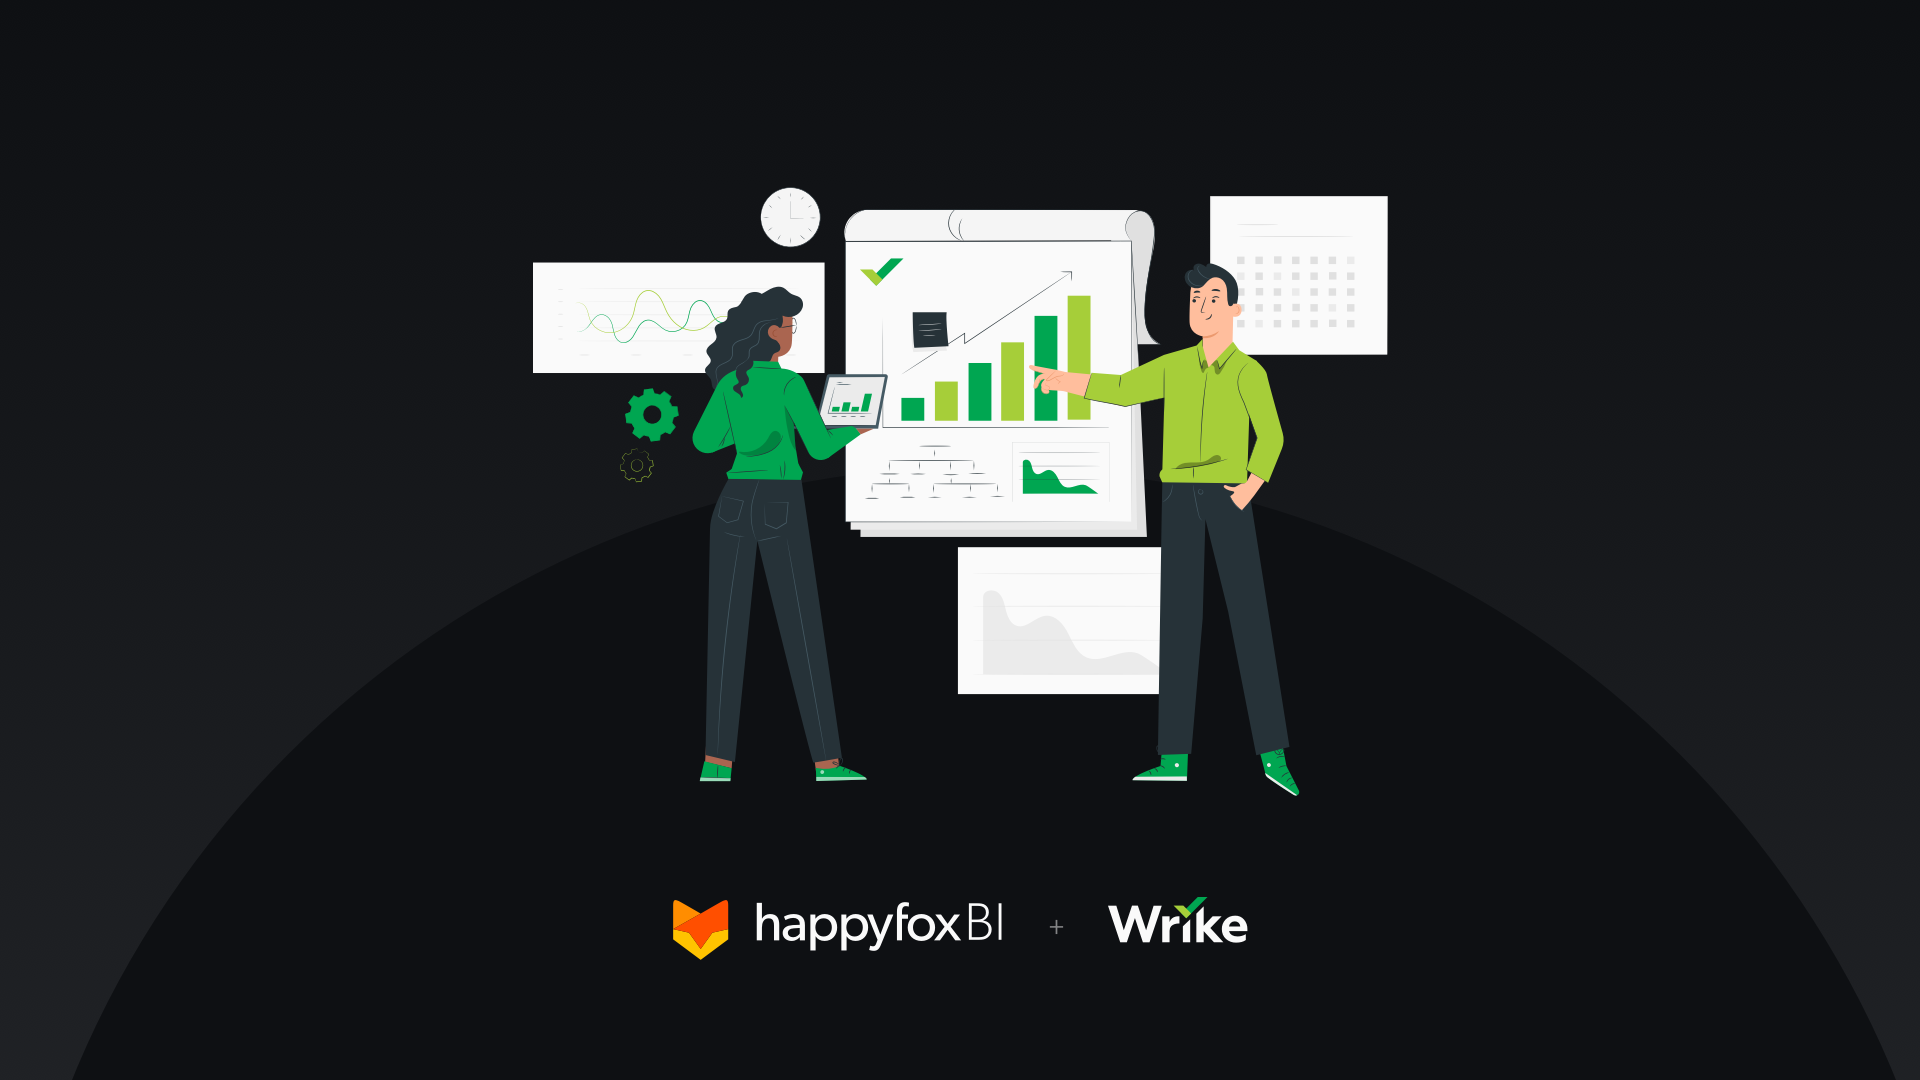 HappyFox BI for Wrike: 6 steps to get started on your first Dashboard!